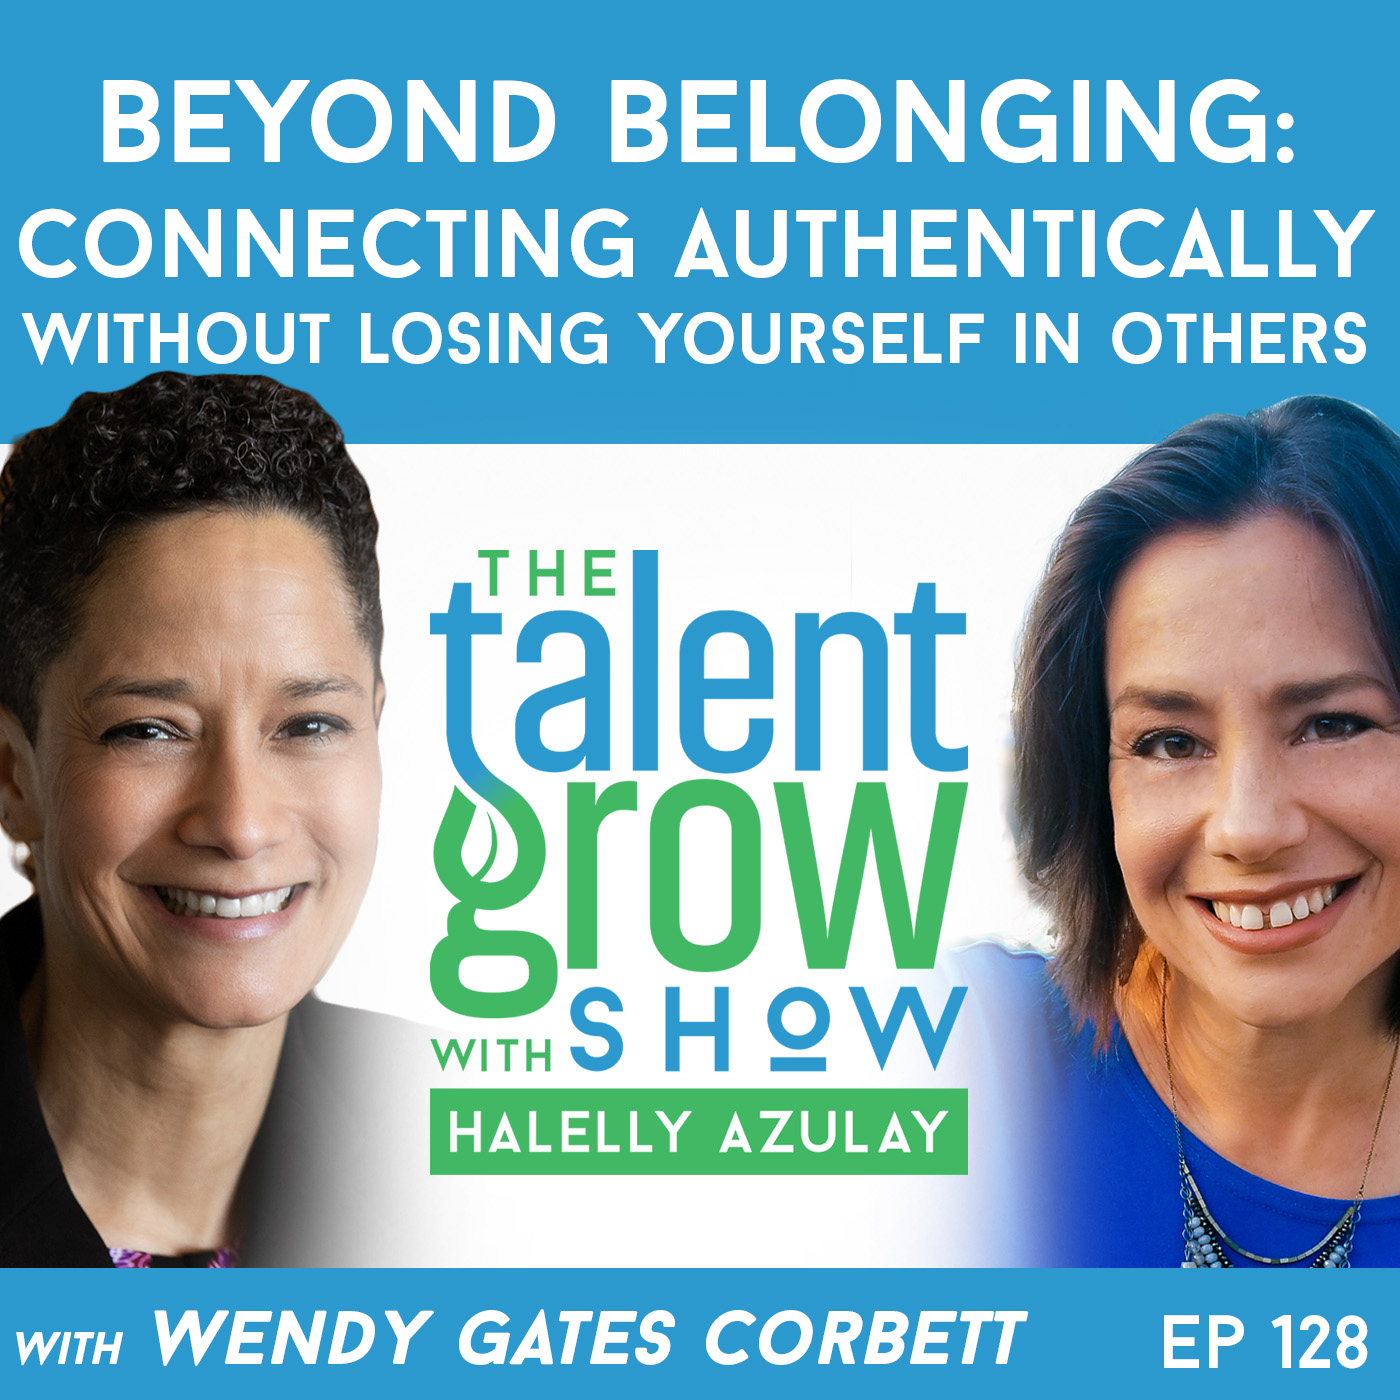 Ep128 sq Beyond Belonging Connecting Authentically Wendy Gates Corbett TalentGrow Show with Halelly Azulay.jpg